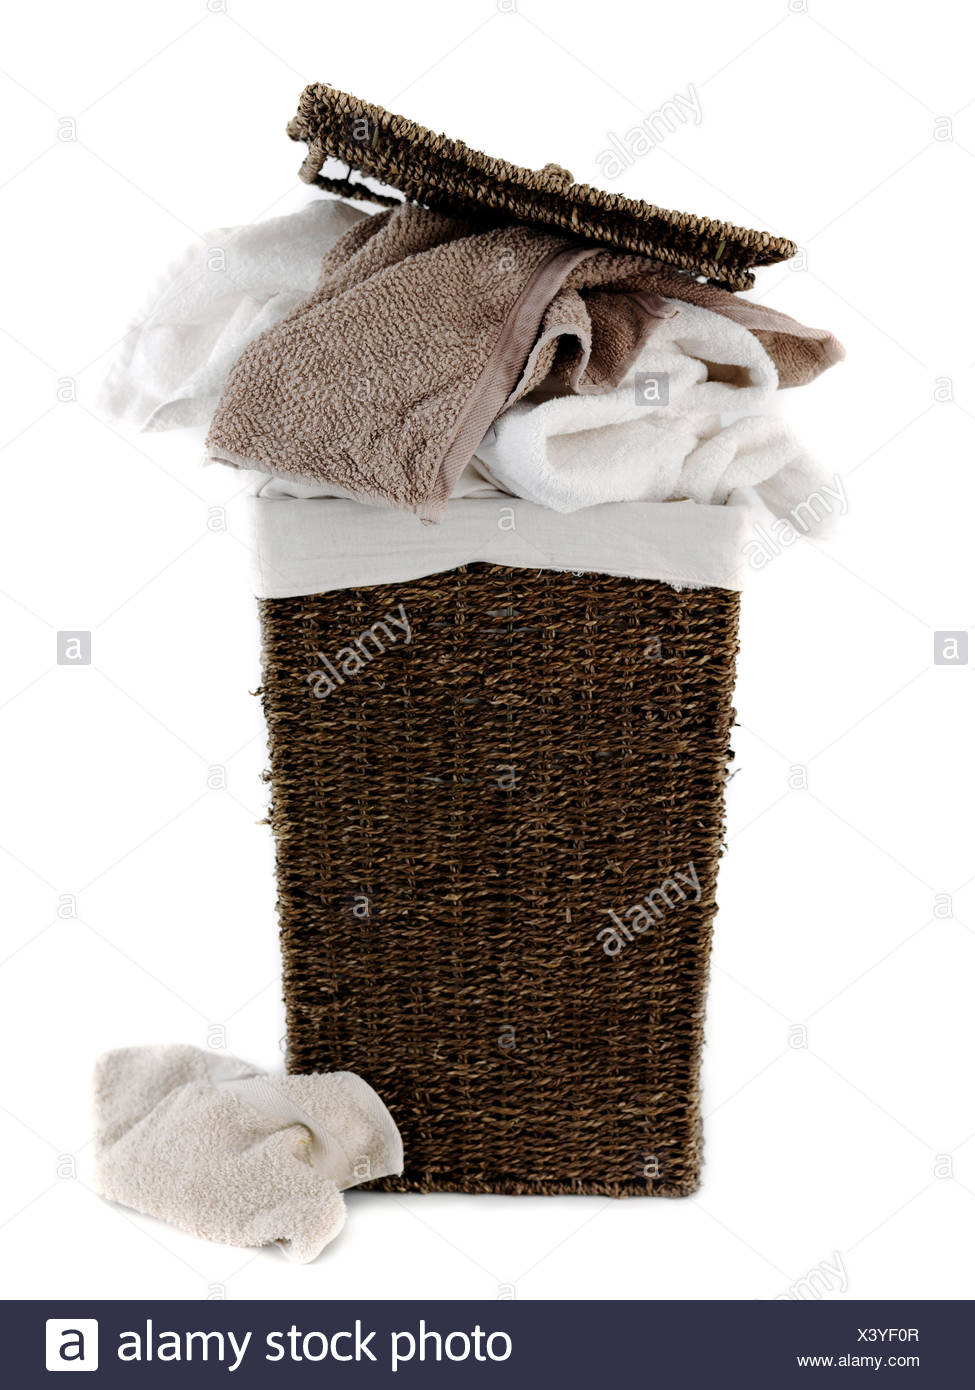 A laundry basket isolated against a white background - Stock Image